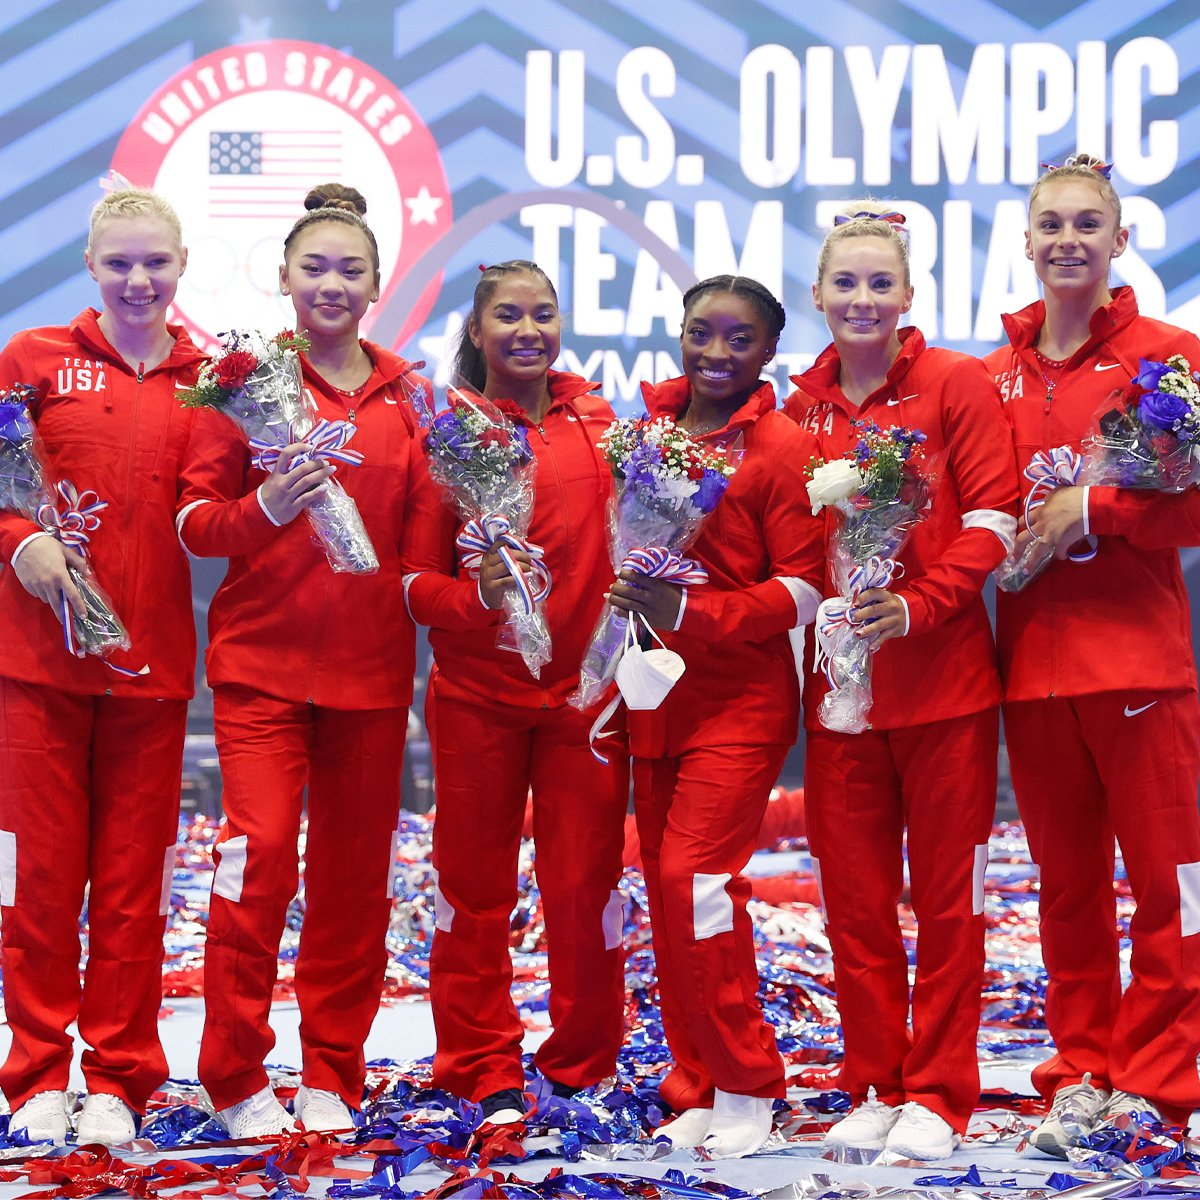 Gymnast Suni Lee Wins Gold as Teammate Simone Biles Cheers Her on in Tokyo Olympics Stands